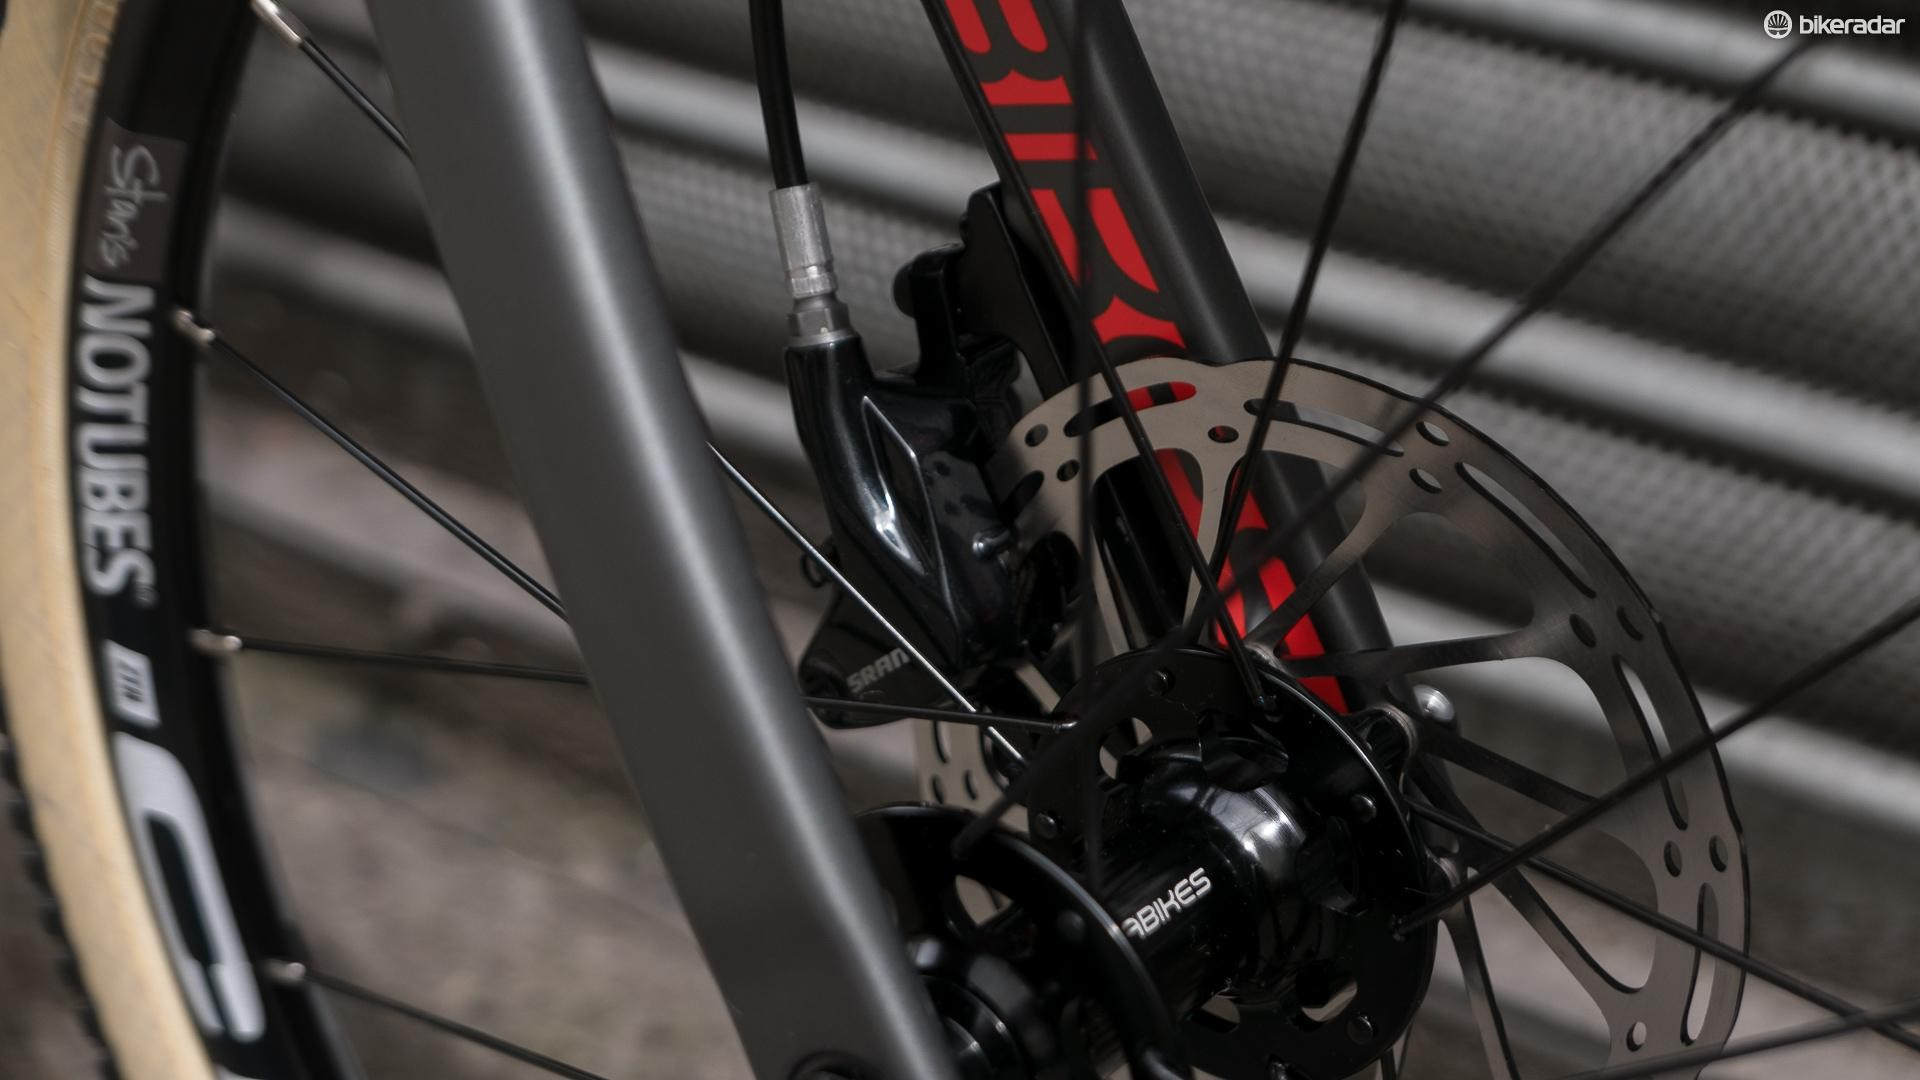 The Beinn 20 uses Avid DB5 disc brakes and 140mm rotors